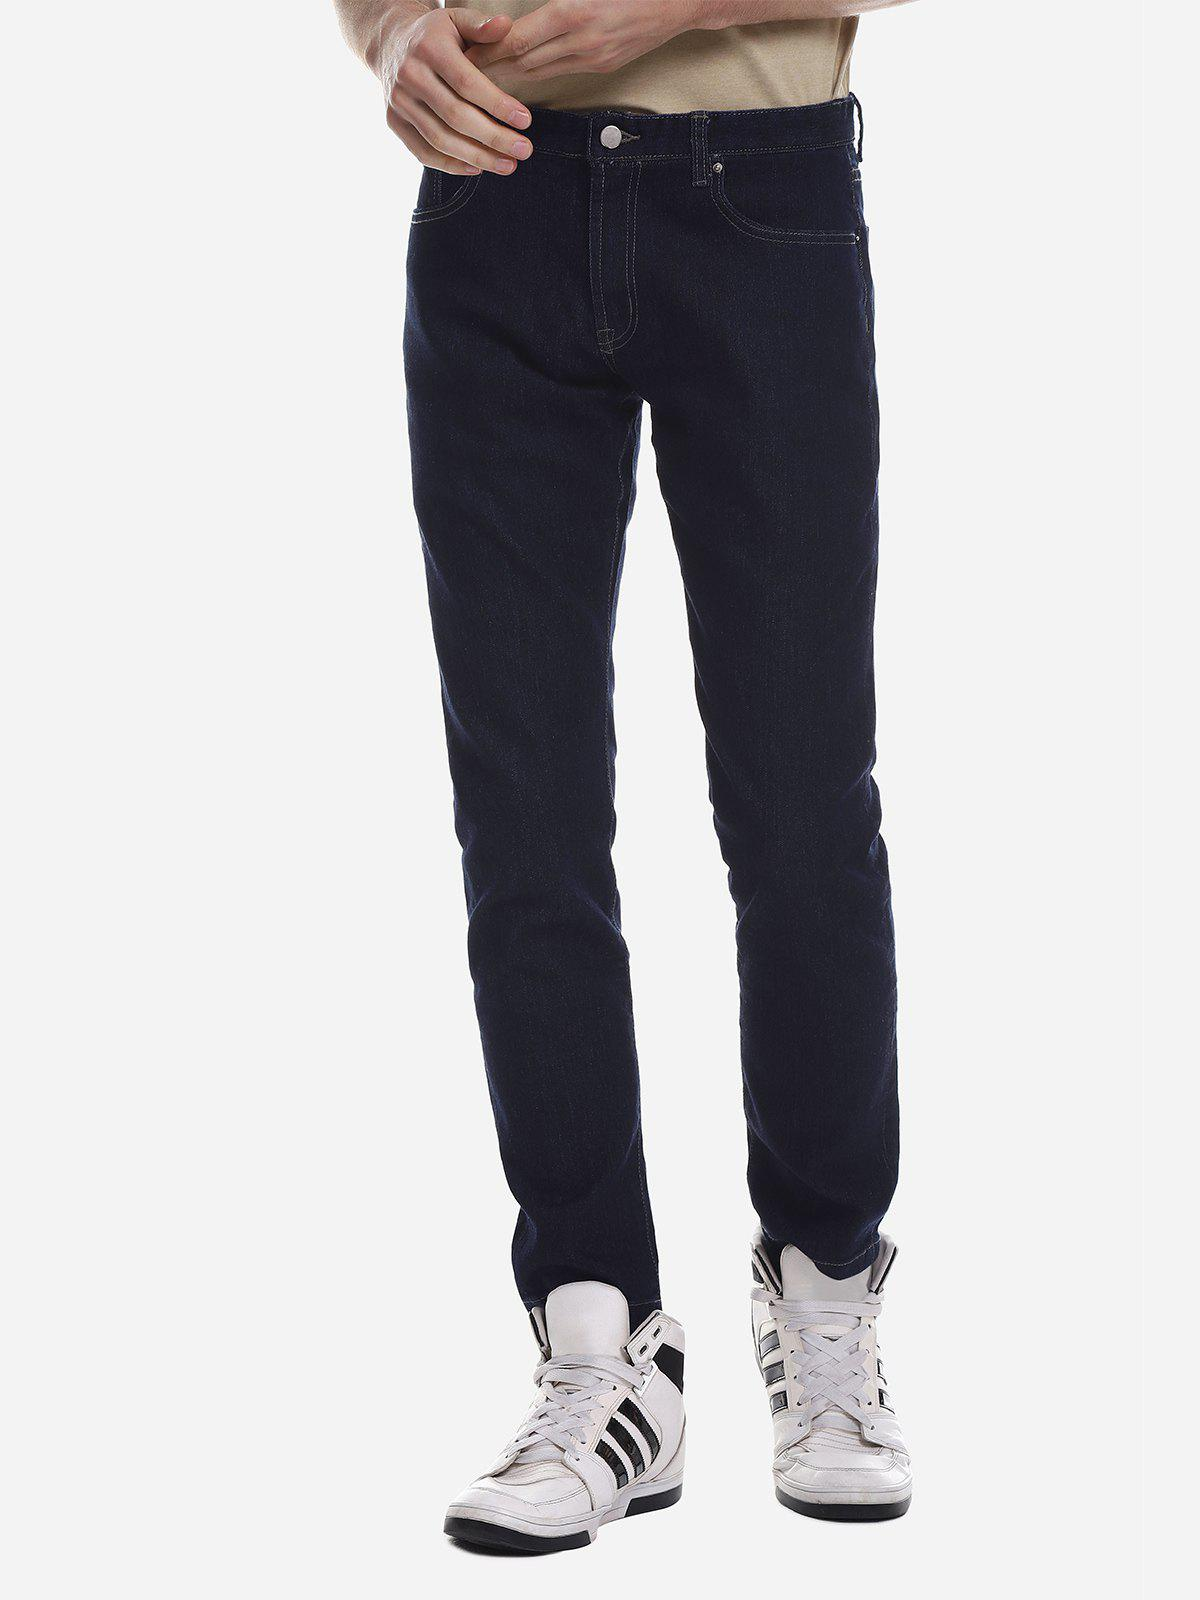 Unique ZANSTYLE Men Stretch Knit Skinny Jeans